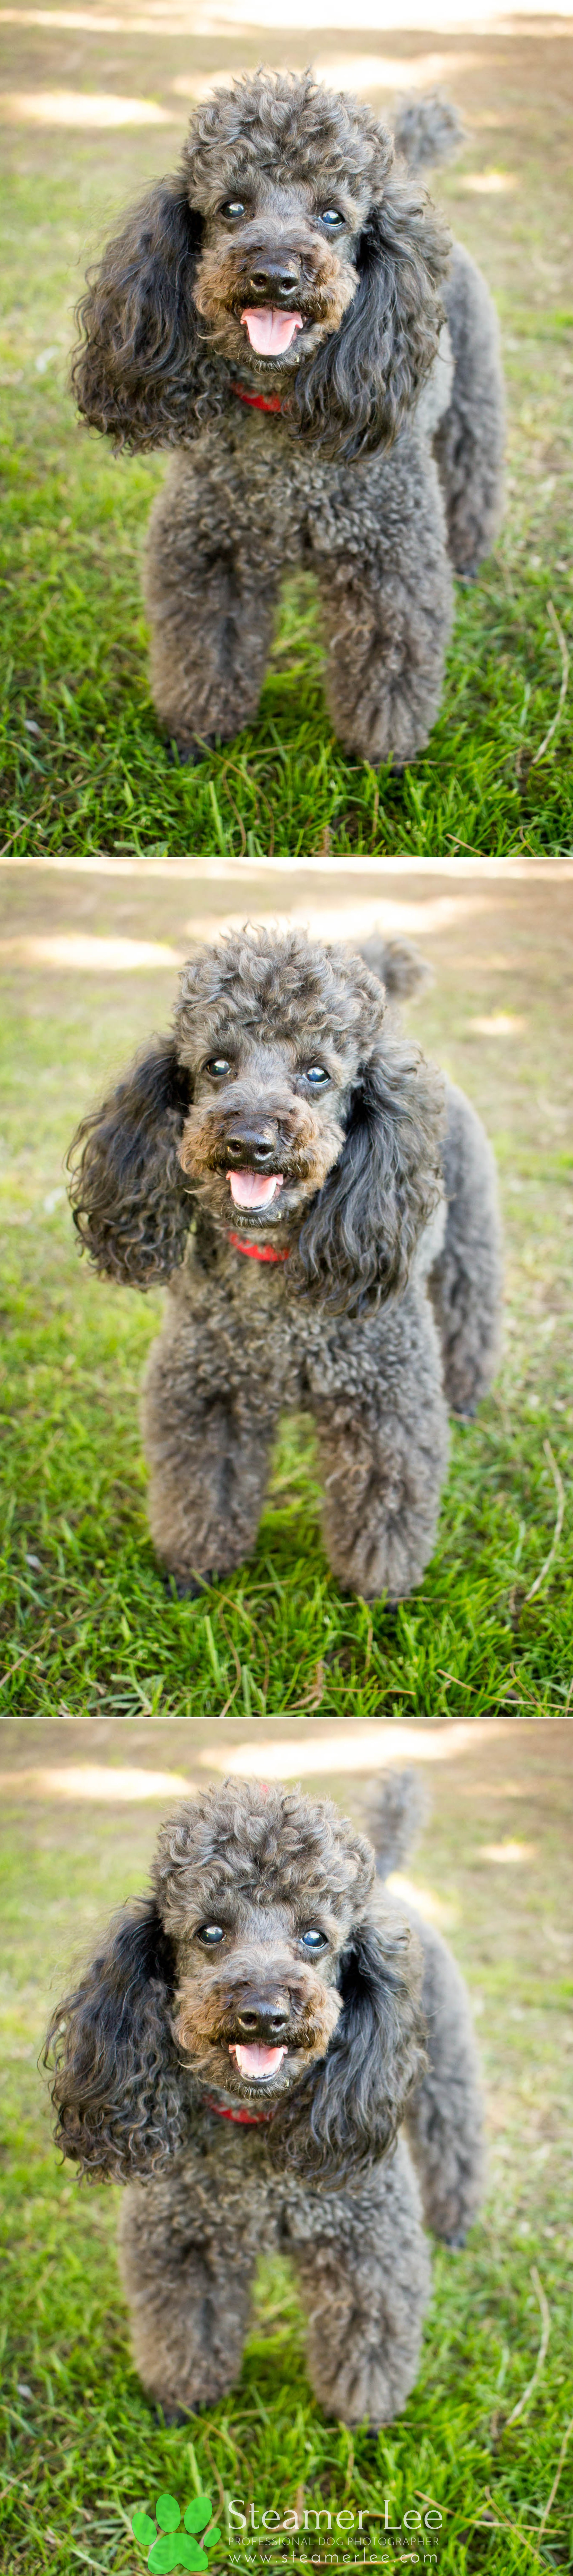 010 Steamer Lee Dog Photography - Orange County Dog Photography - German Shepherd Rottweiler Mix_Poodle.JPG